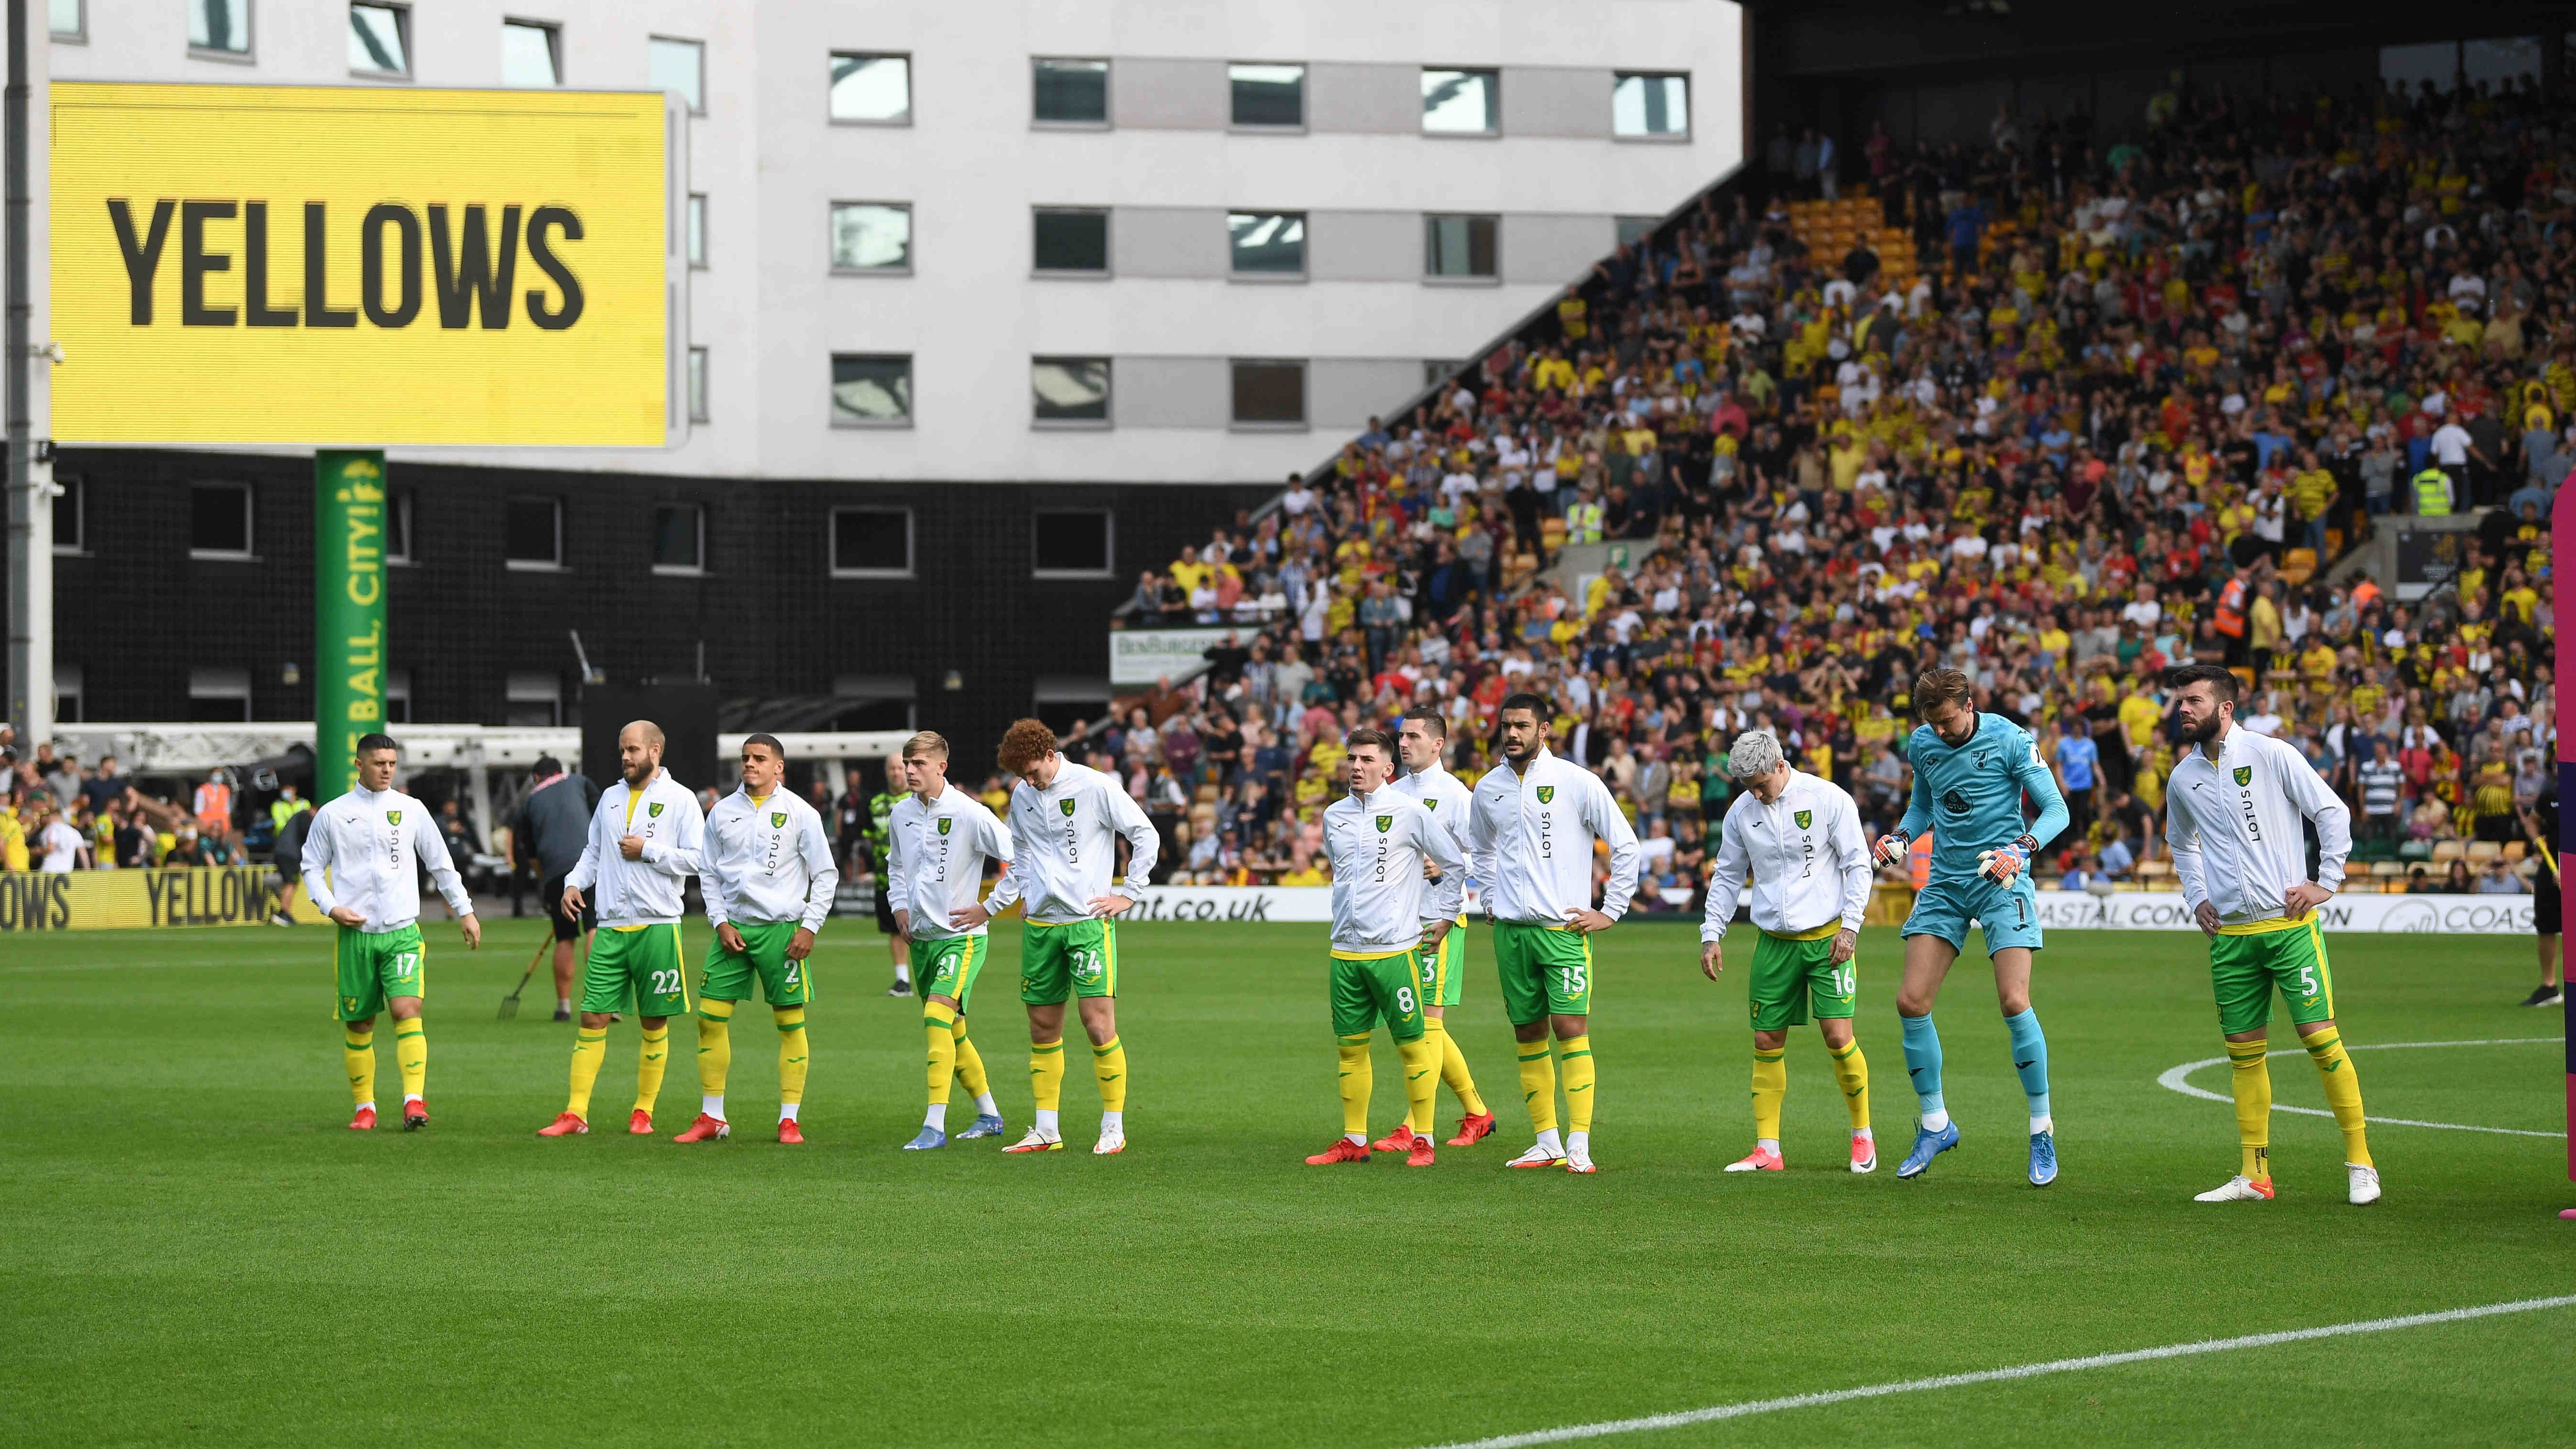 coming-to-carrow-road-for-our-match-with-brighton-heres-what-to-look-out-for